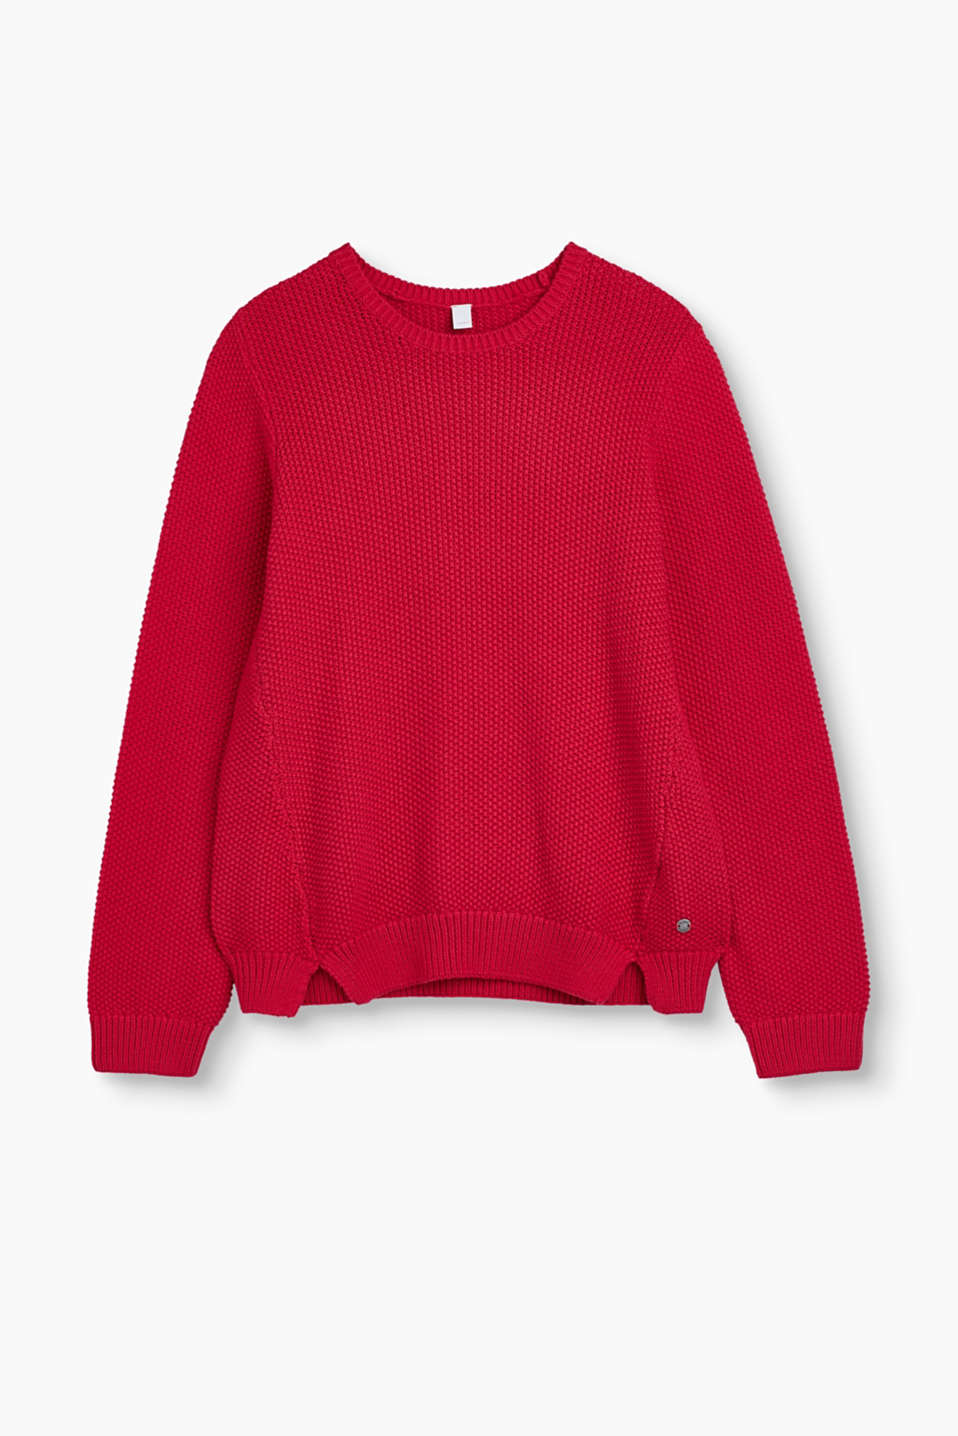 A favourite pieces for everyday wear: Round jumper in textured knit yarn made of pure cotton.